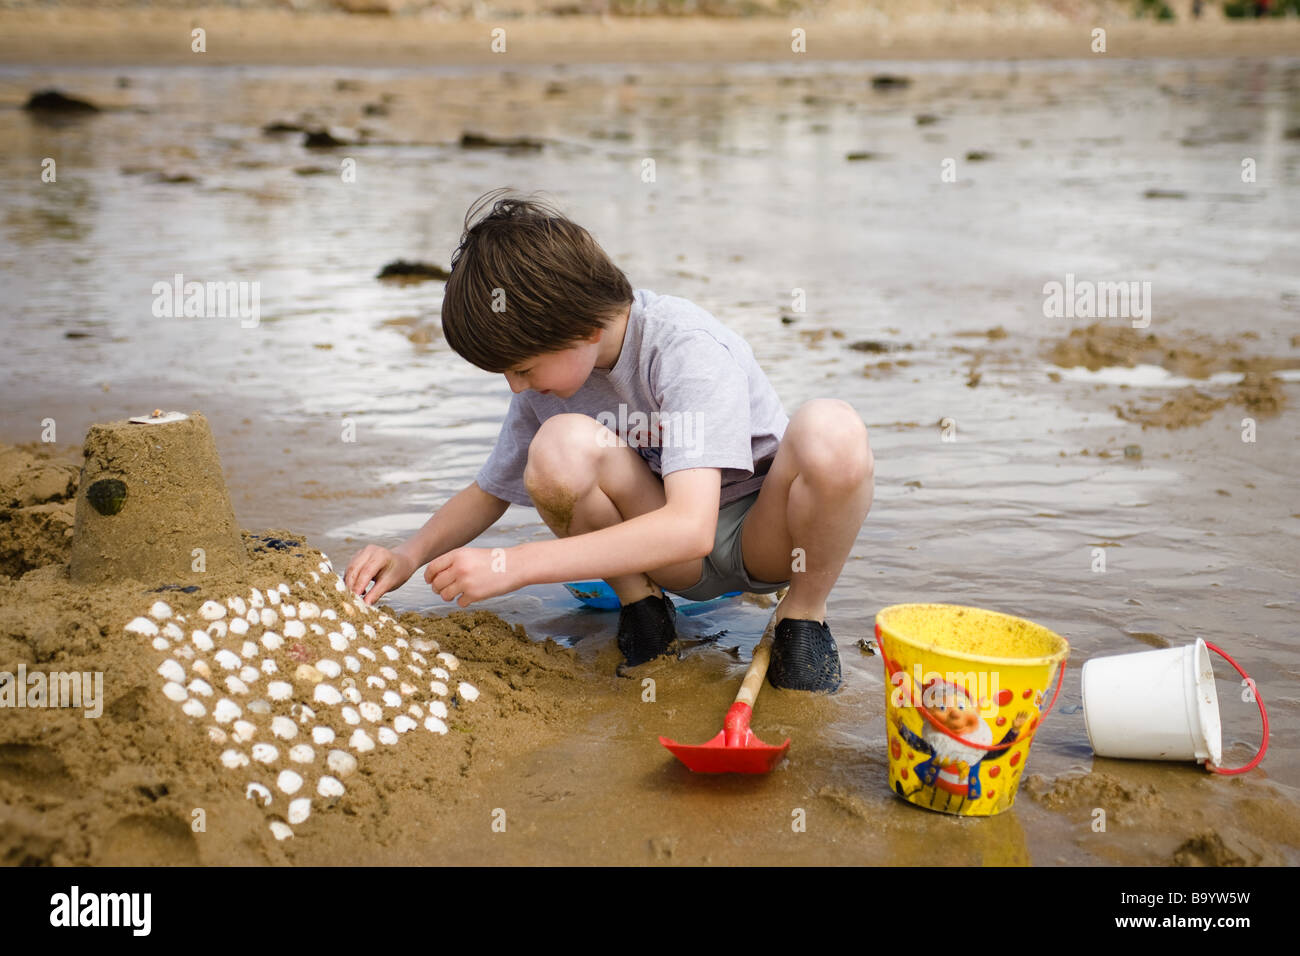 A pre-teen boy bends over to decorate his sand castle with white shells with plastic toys and reflecting water in - Stock Image